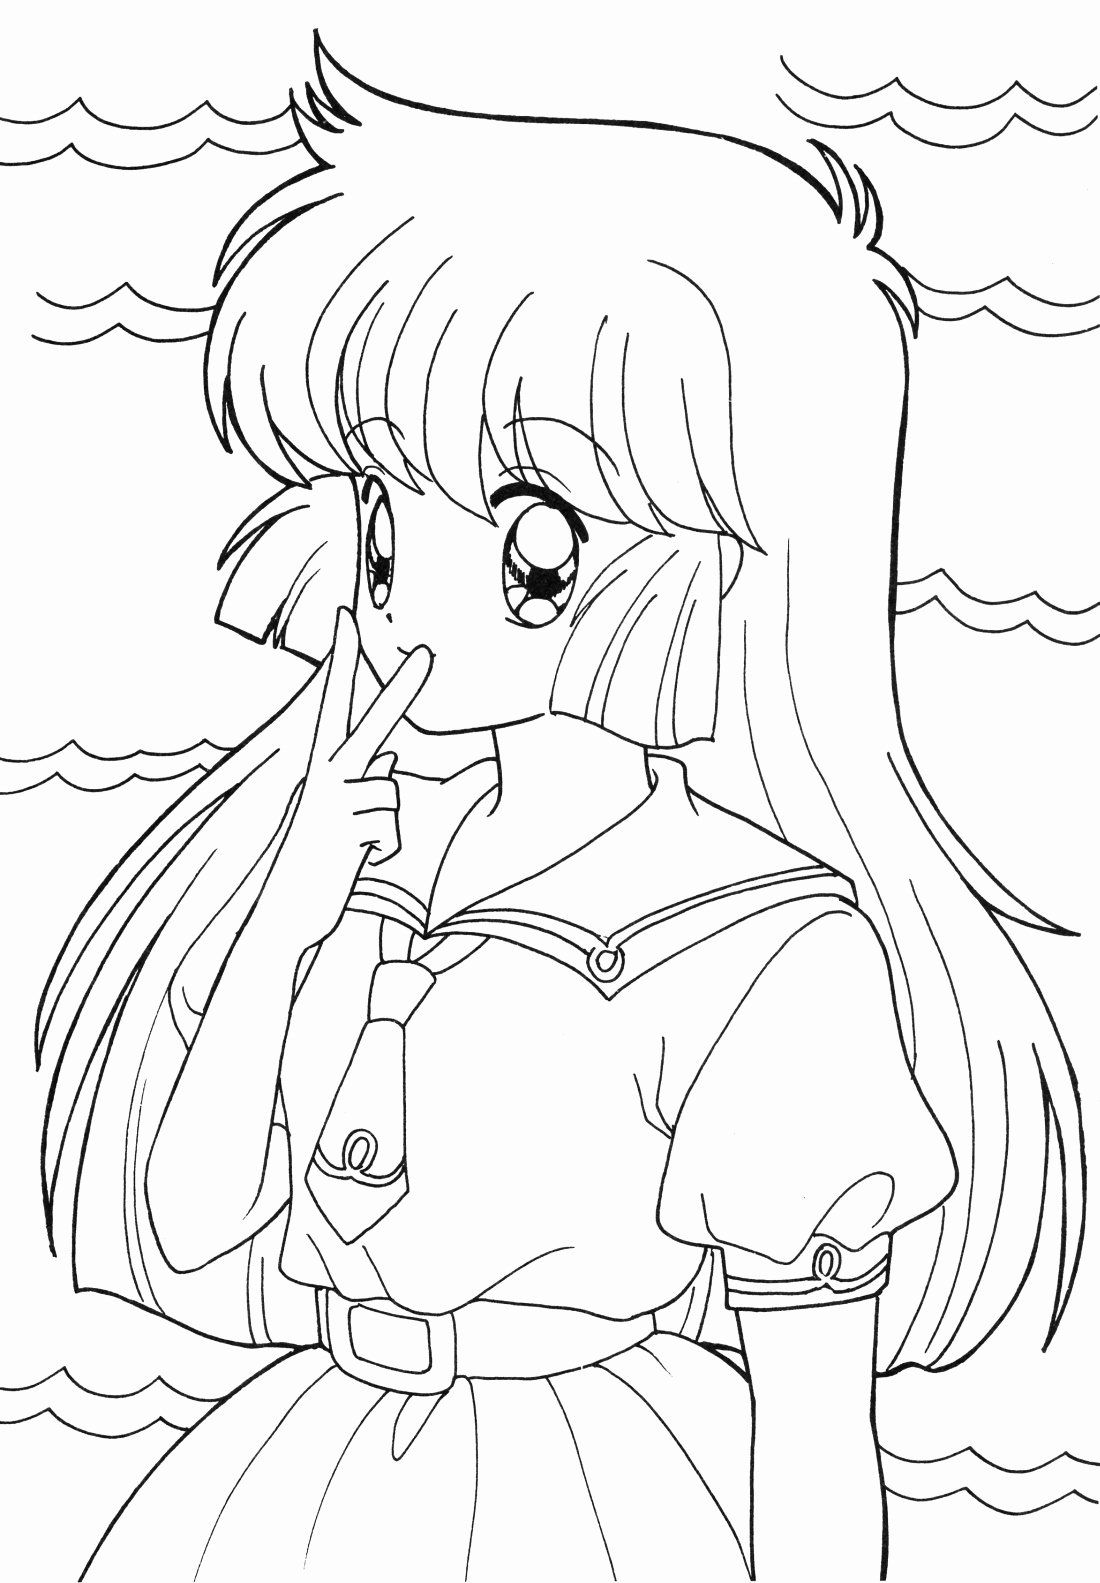 Printable Anime Coloring Pages Awesome Some Of The Benefits Coloring Pages Anime In 2020 Unicorn Coloring Pages Christmas Coloring Pages Disney Princess Coloring Pages